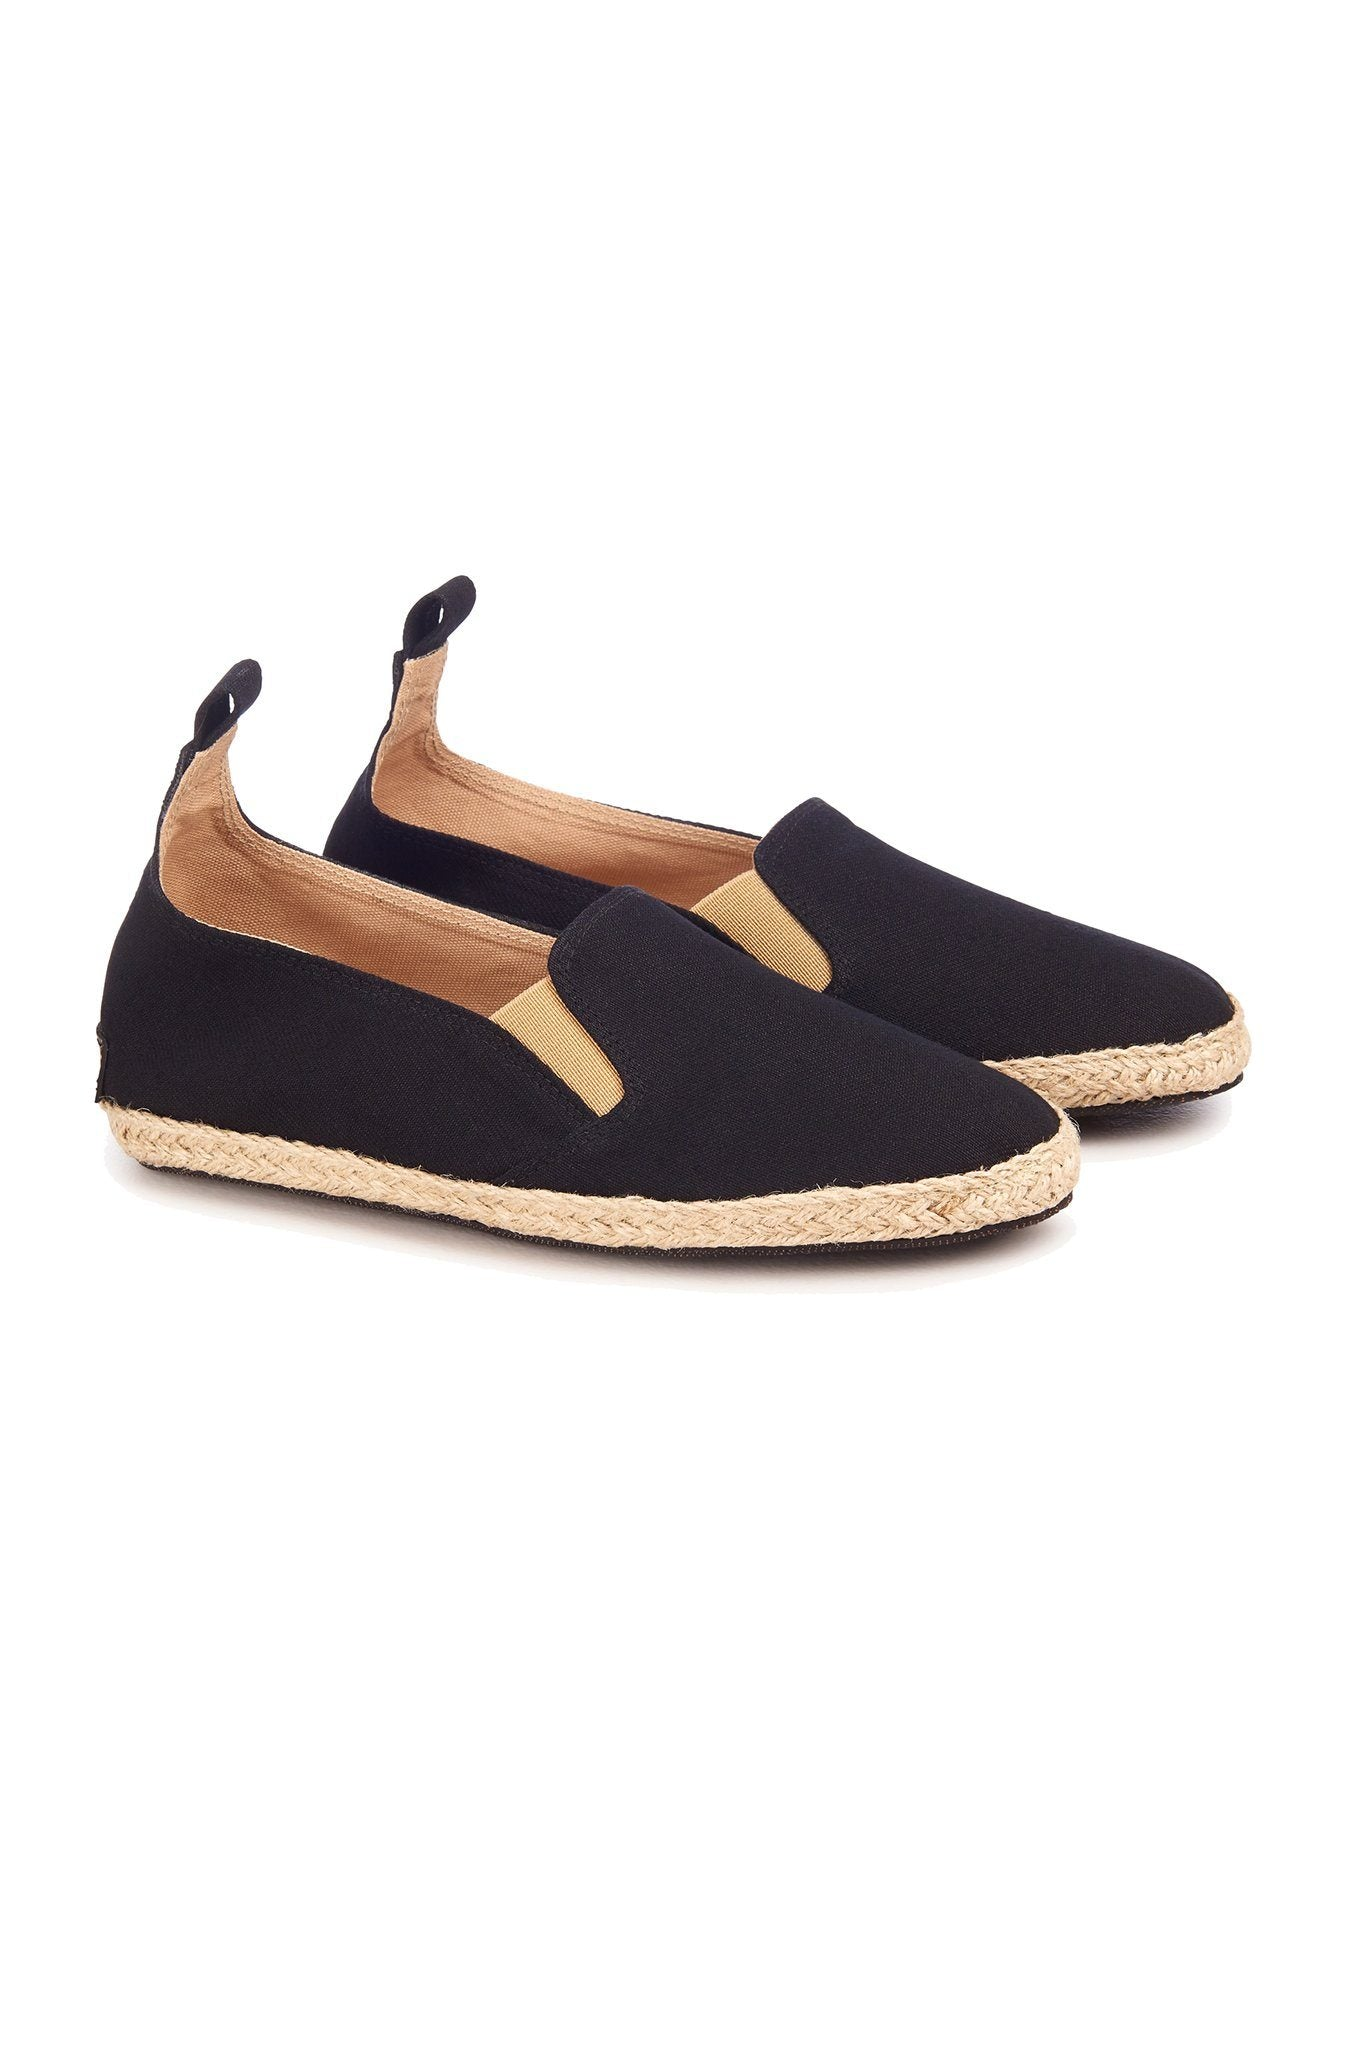 KUNG FU Black Womens Shoes - Komodo Fashion